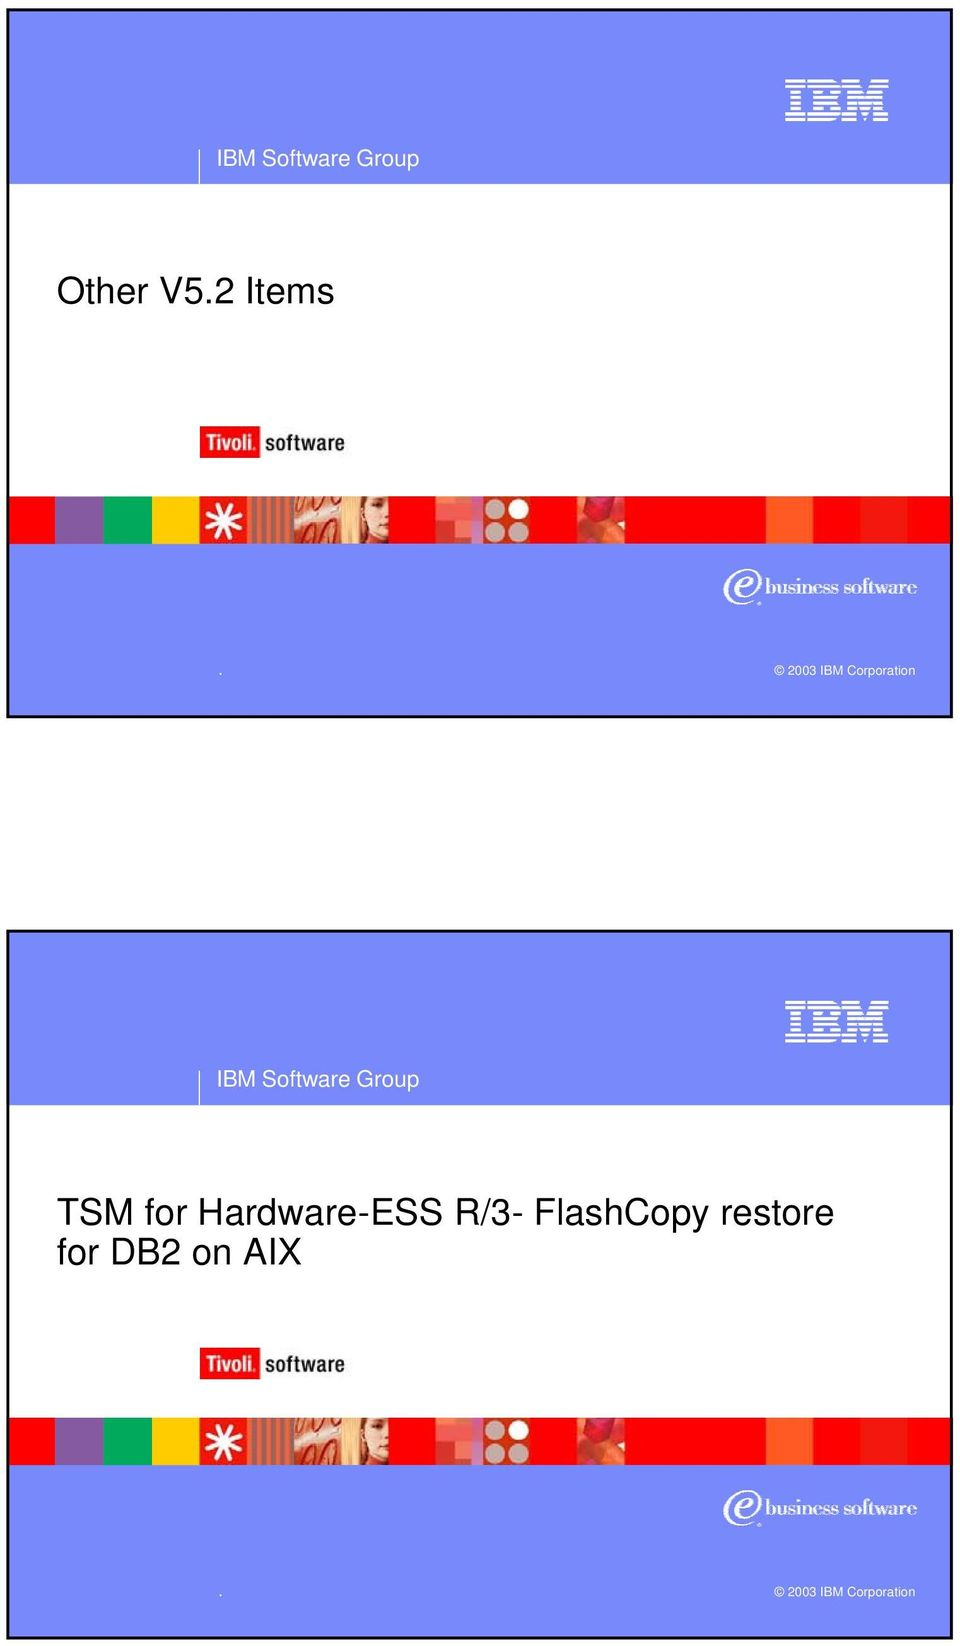 for Hardware-ESS R/3- FlashCopy restore for